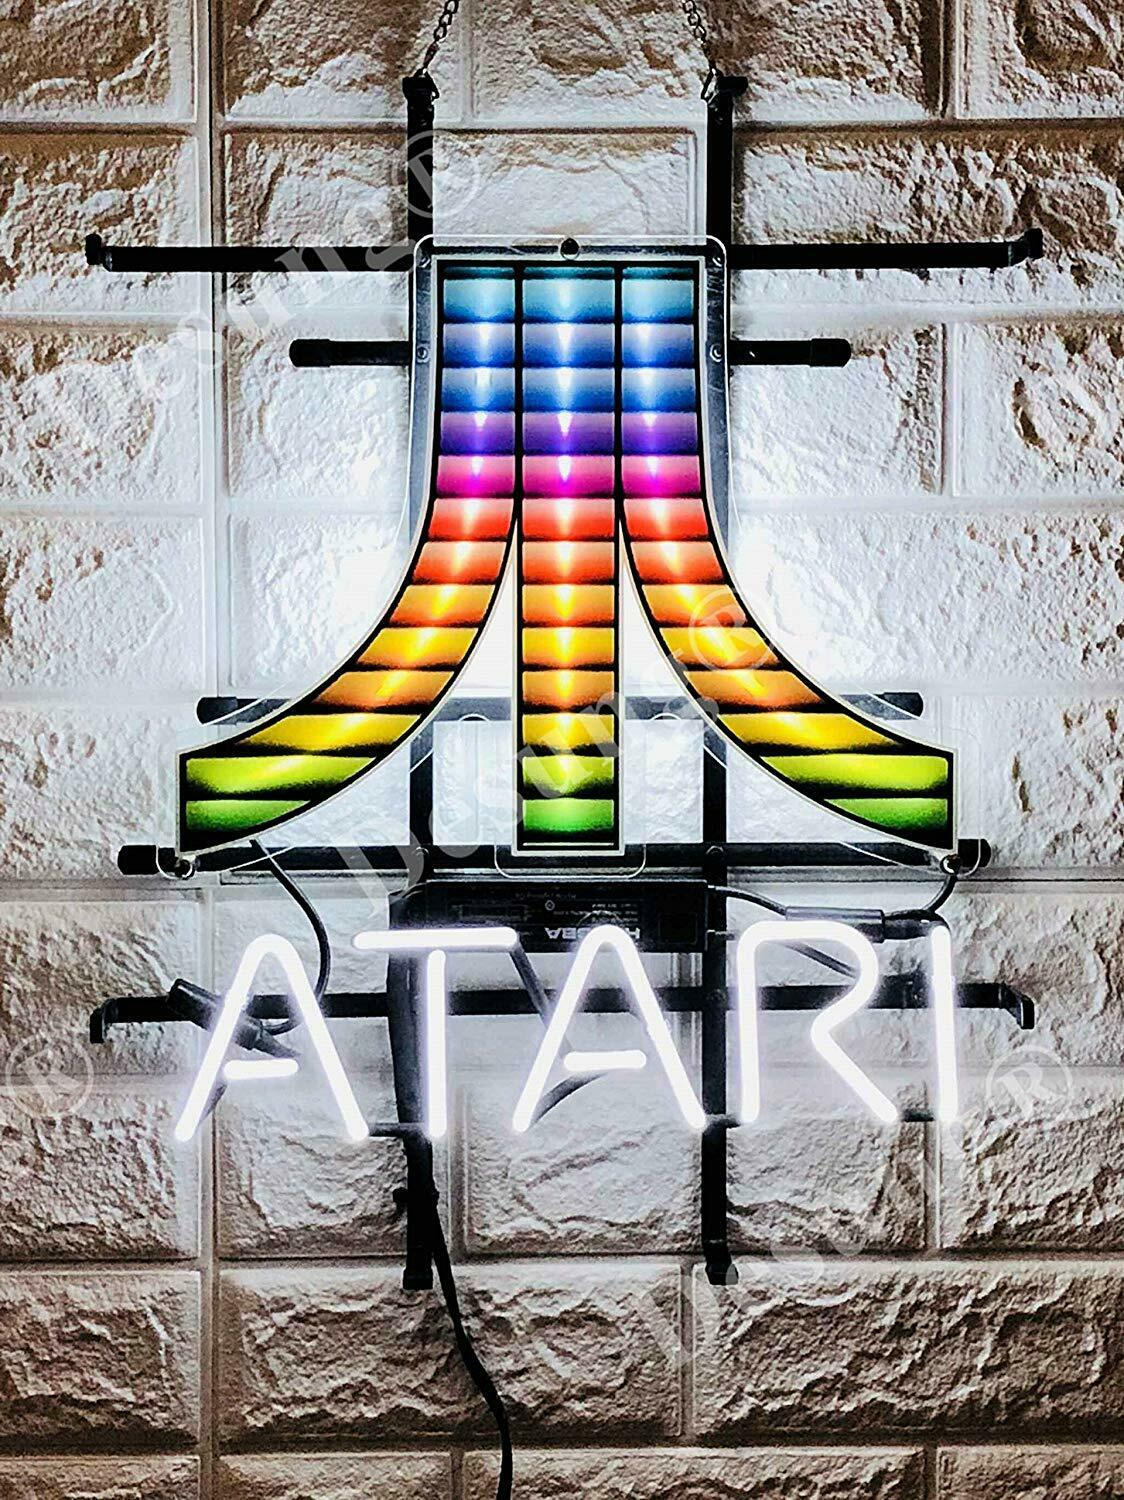 "New Atari Arcade Video Game Room Beer Neon Light Sign 20""x16"